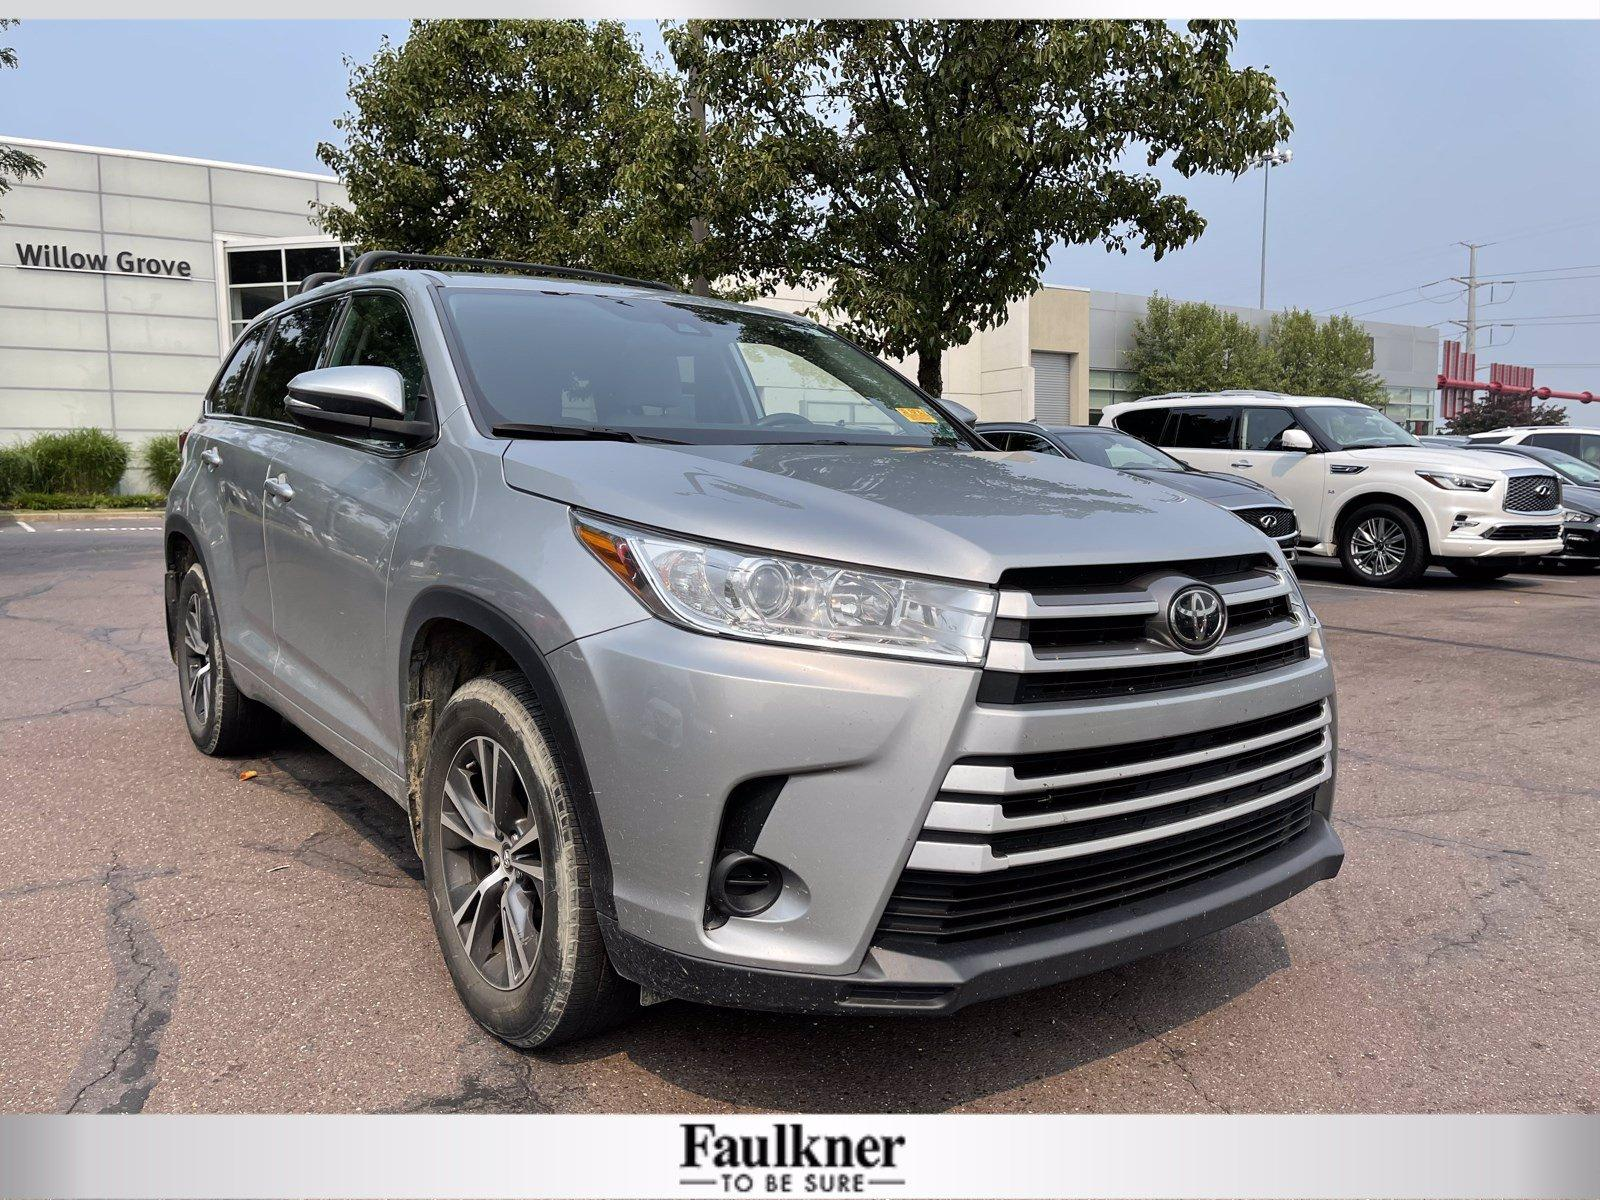 2018 Toyota Highlander Vehicle Photo in Willow Grove, PA 19090